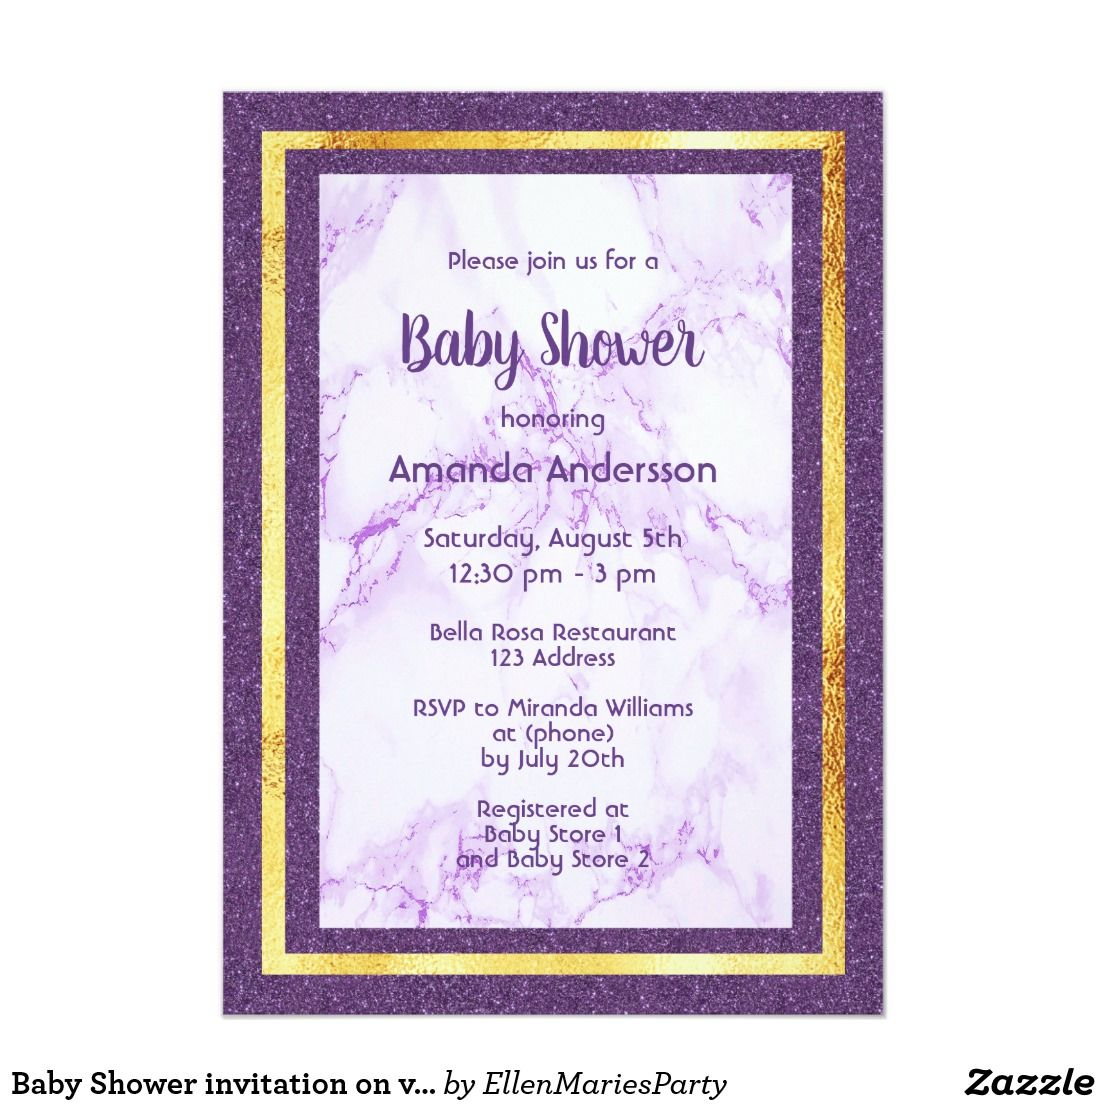 Baby Shower Invitation Letter Adorable Baby Shower Invitation On Violet Marble Glitter  Elegant .